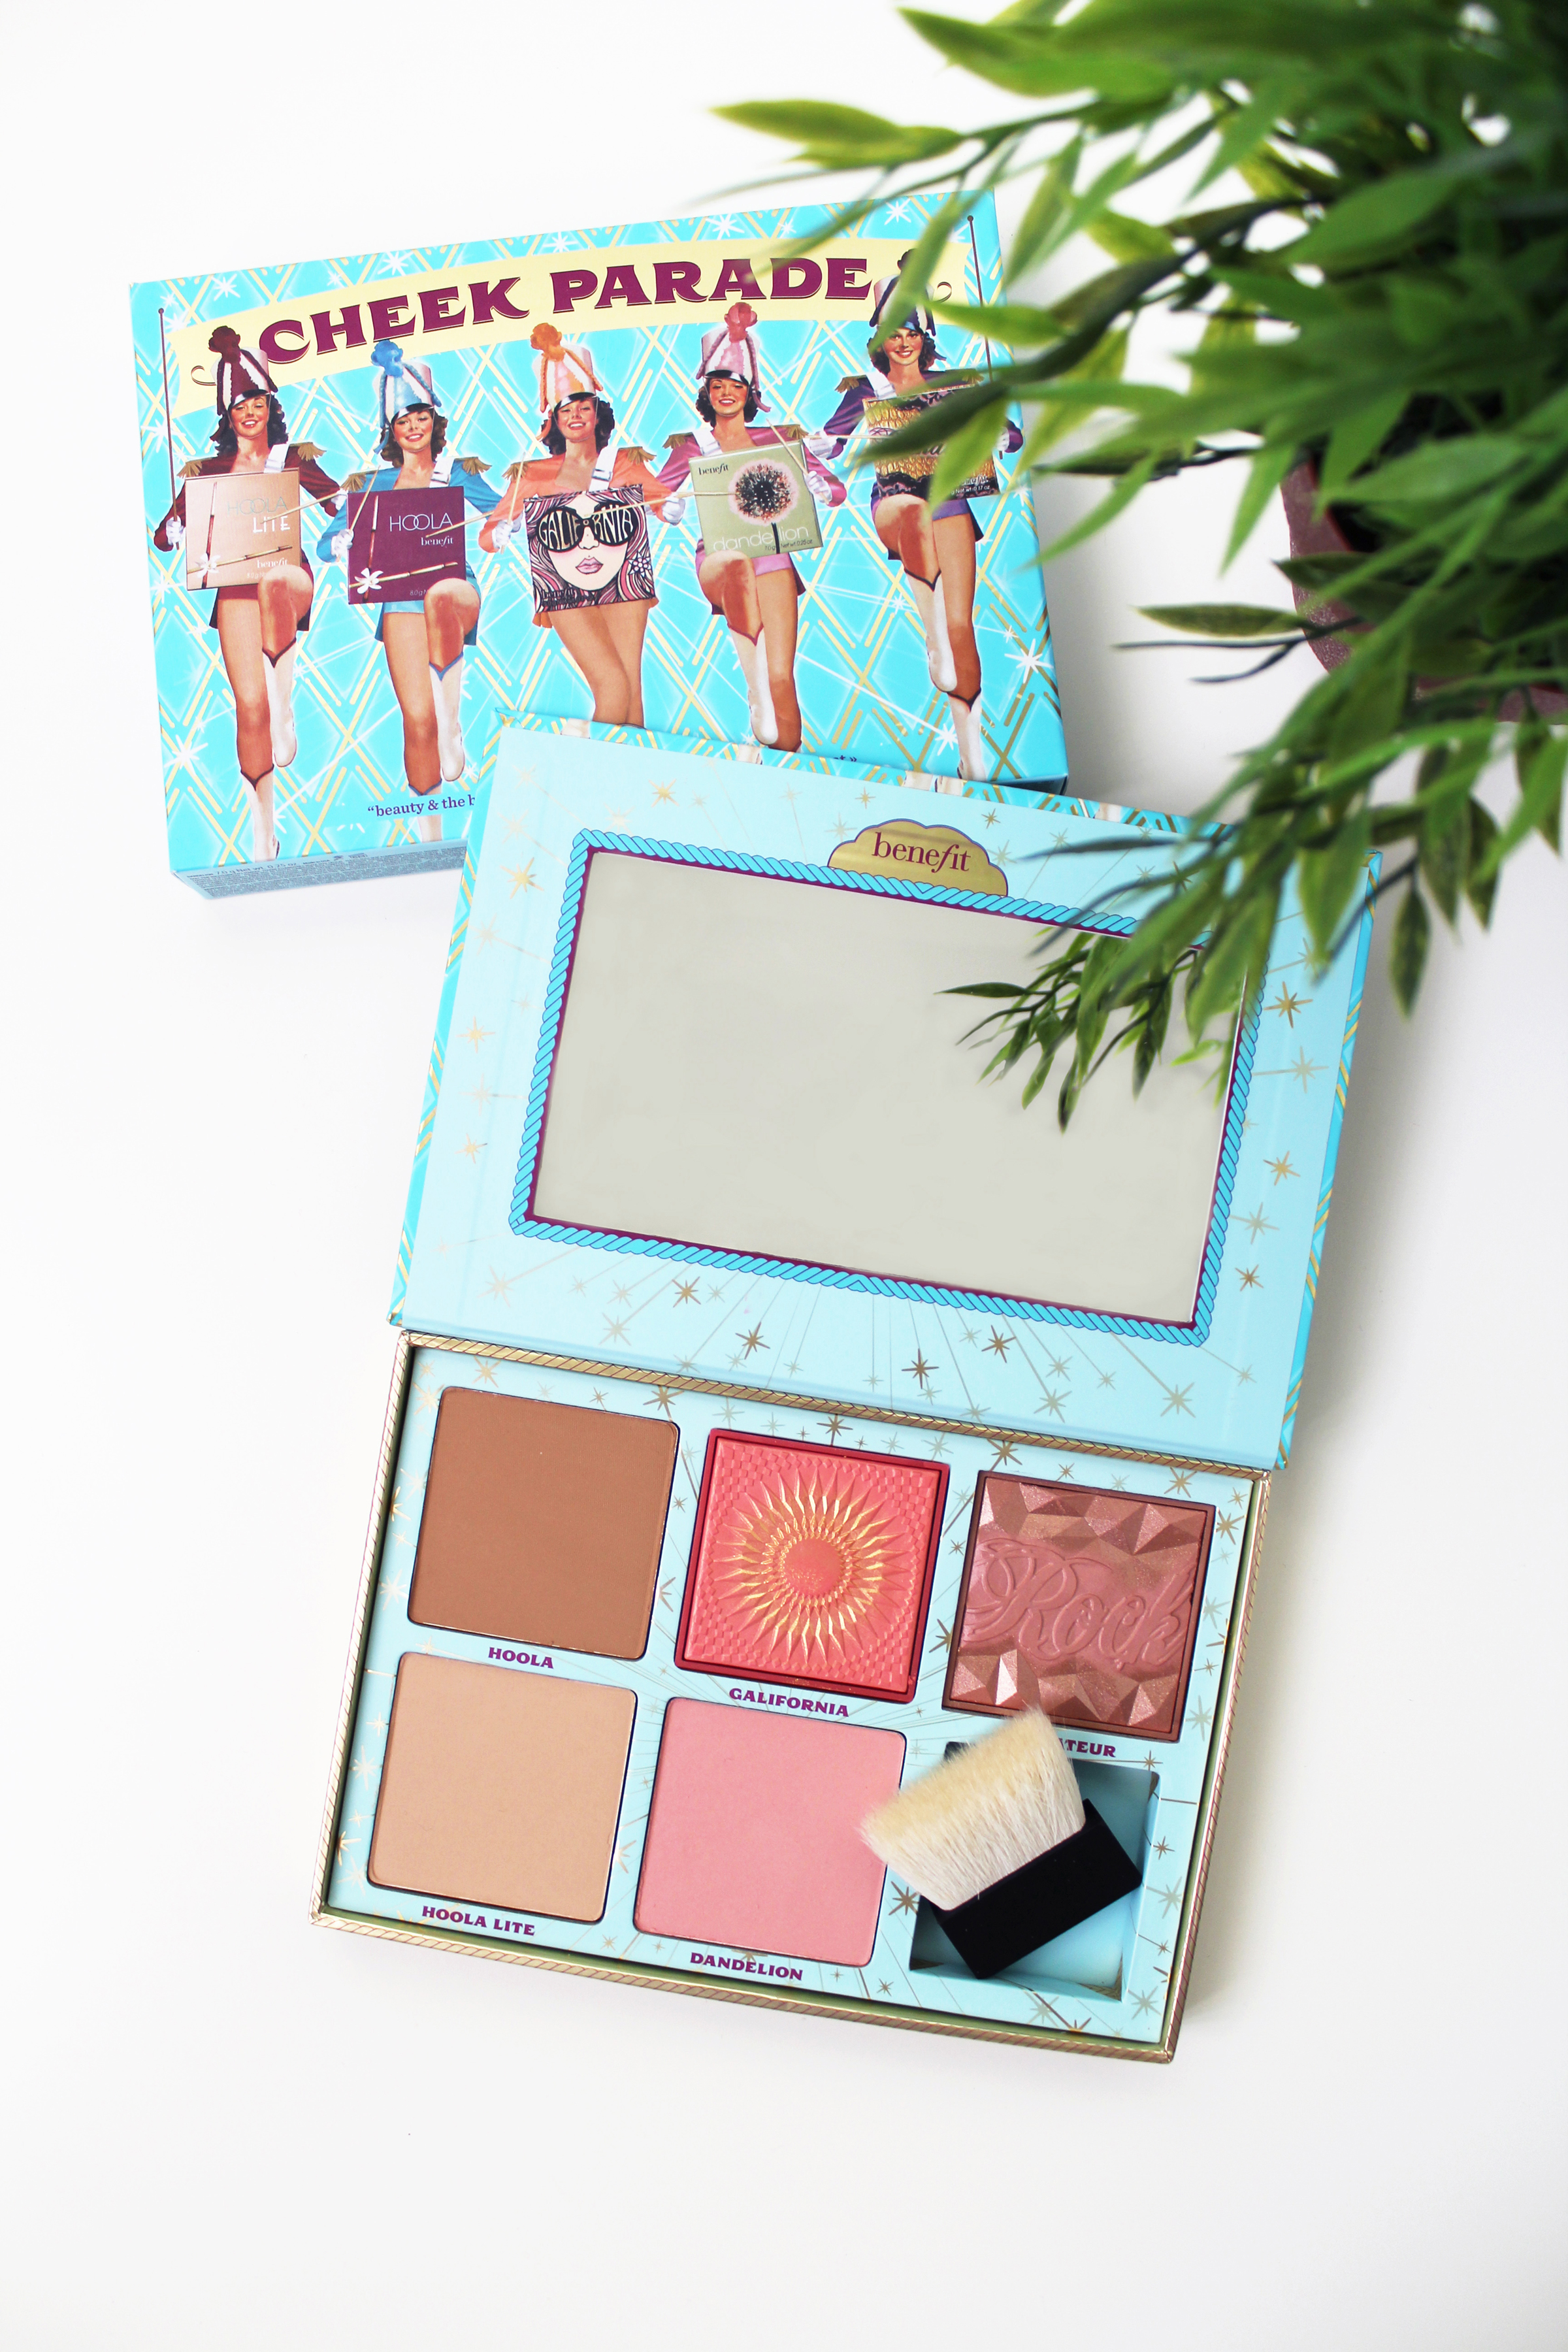 Sephora Haul Benefit Cheek Parade Beauty and the Beat Blush Kit